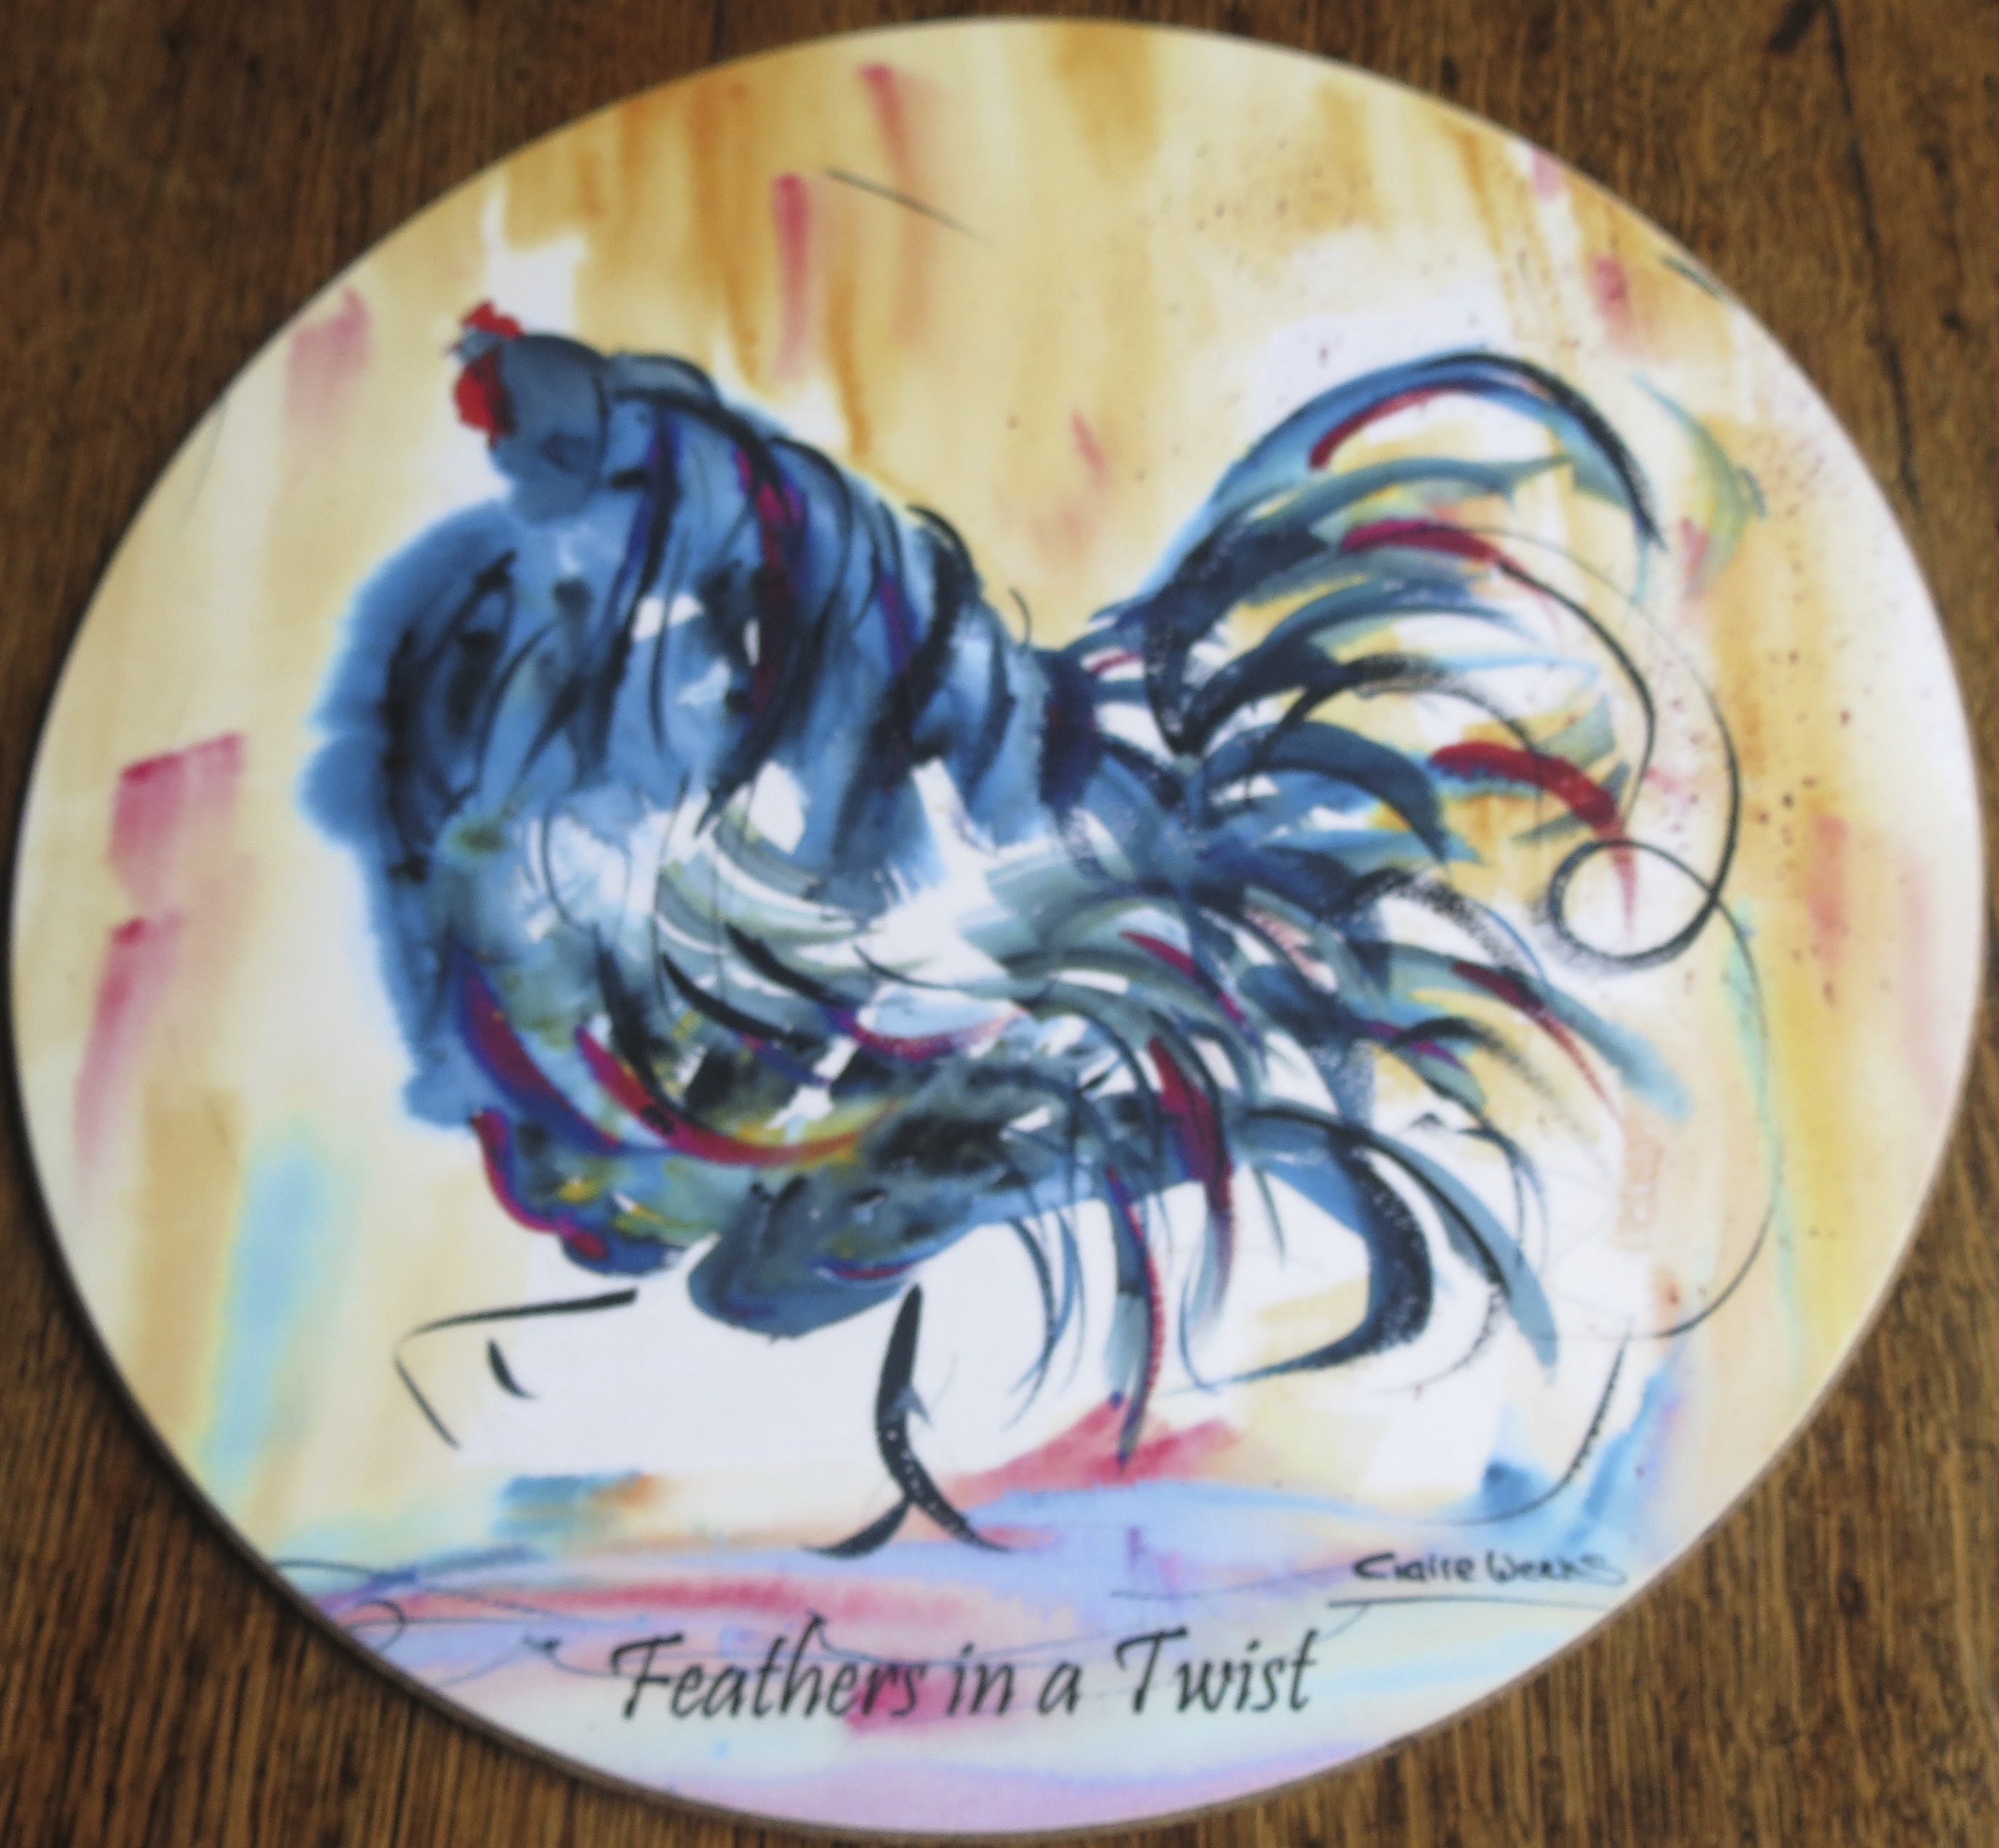 feathers in a twist